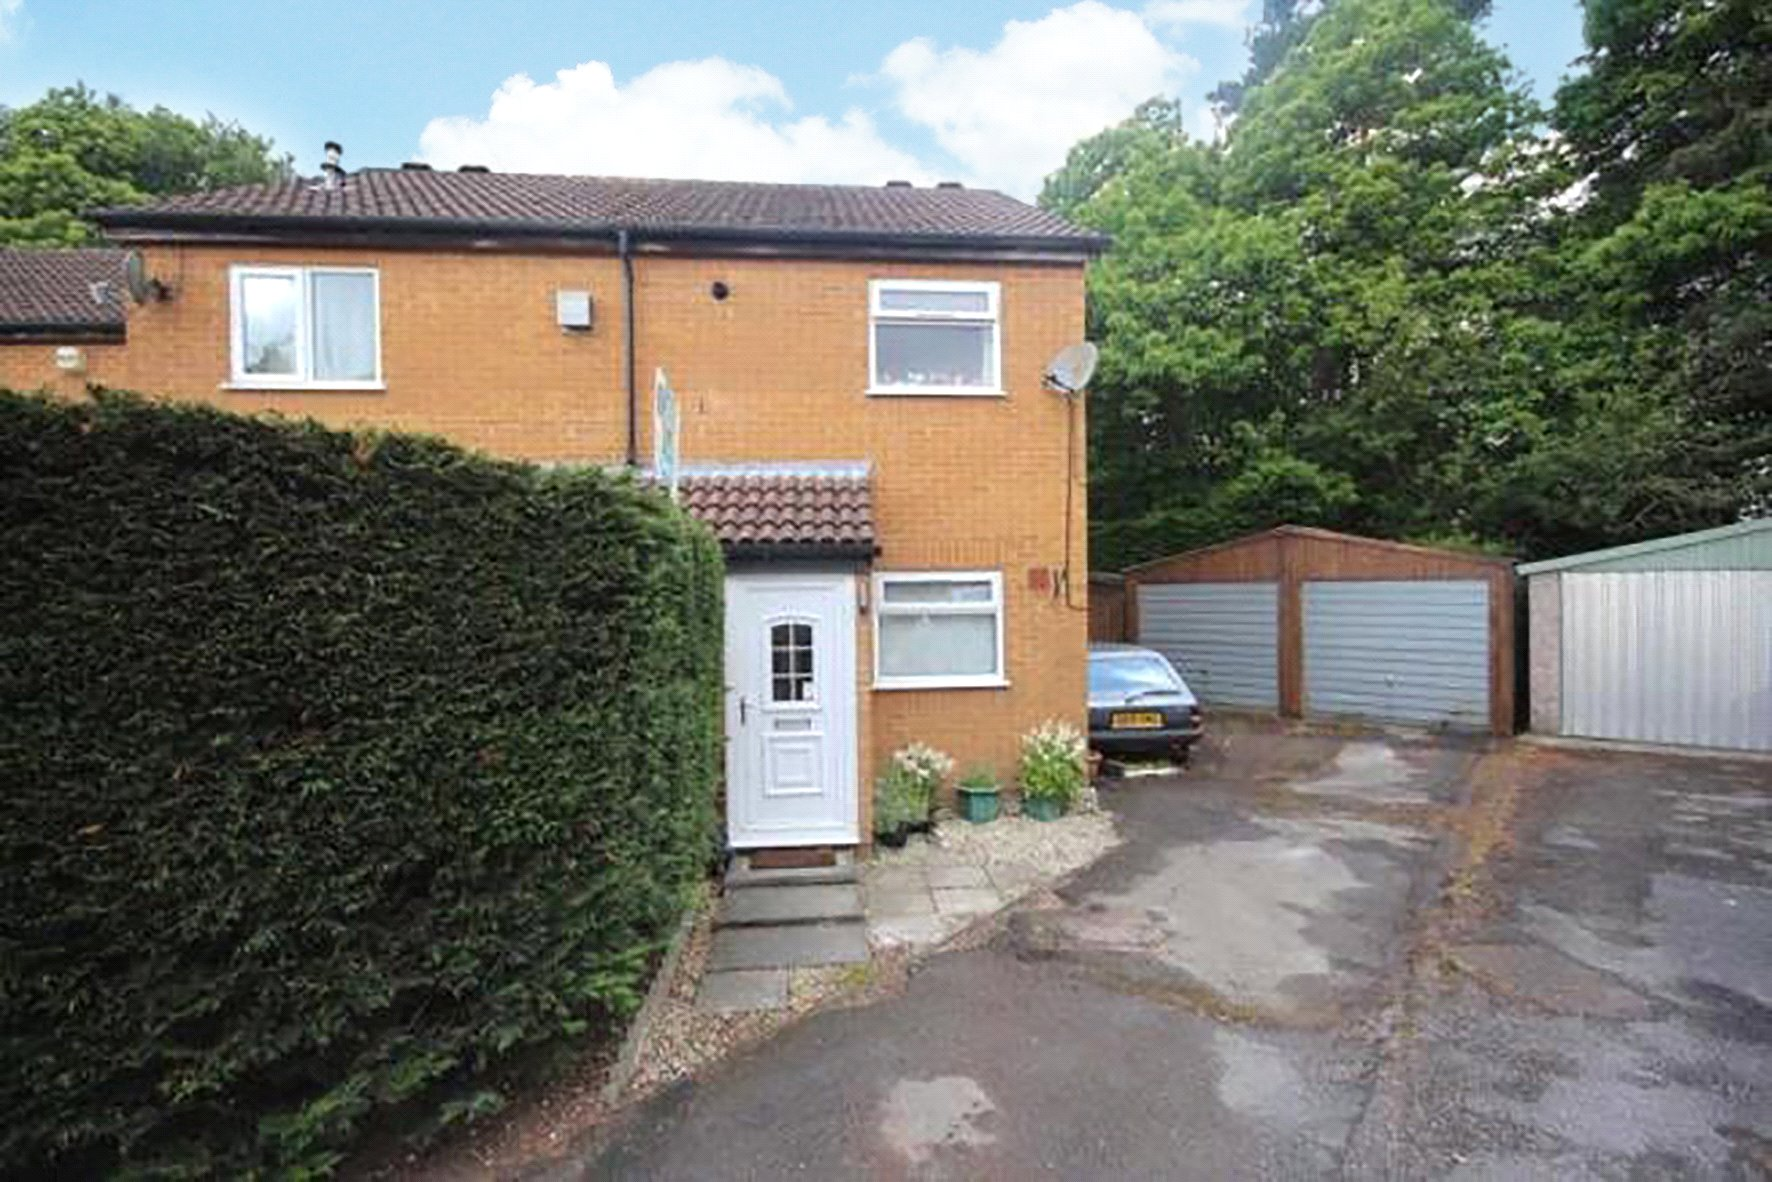 2 Bedrooms End Of Terrace House for sale in Frensham, Bracknell, Berkshire, RG12